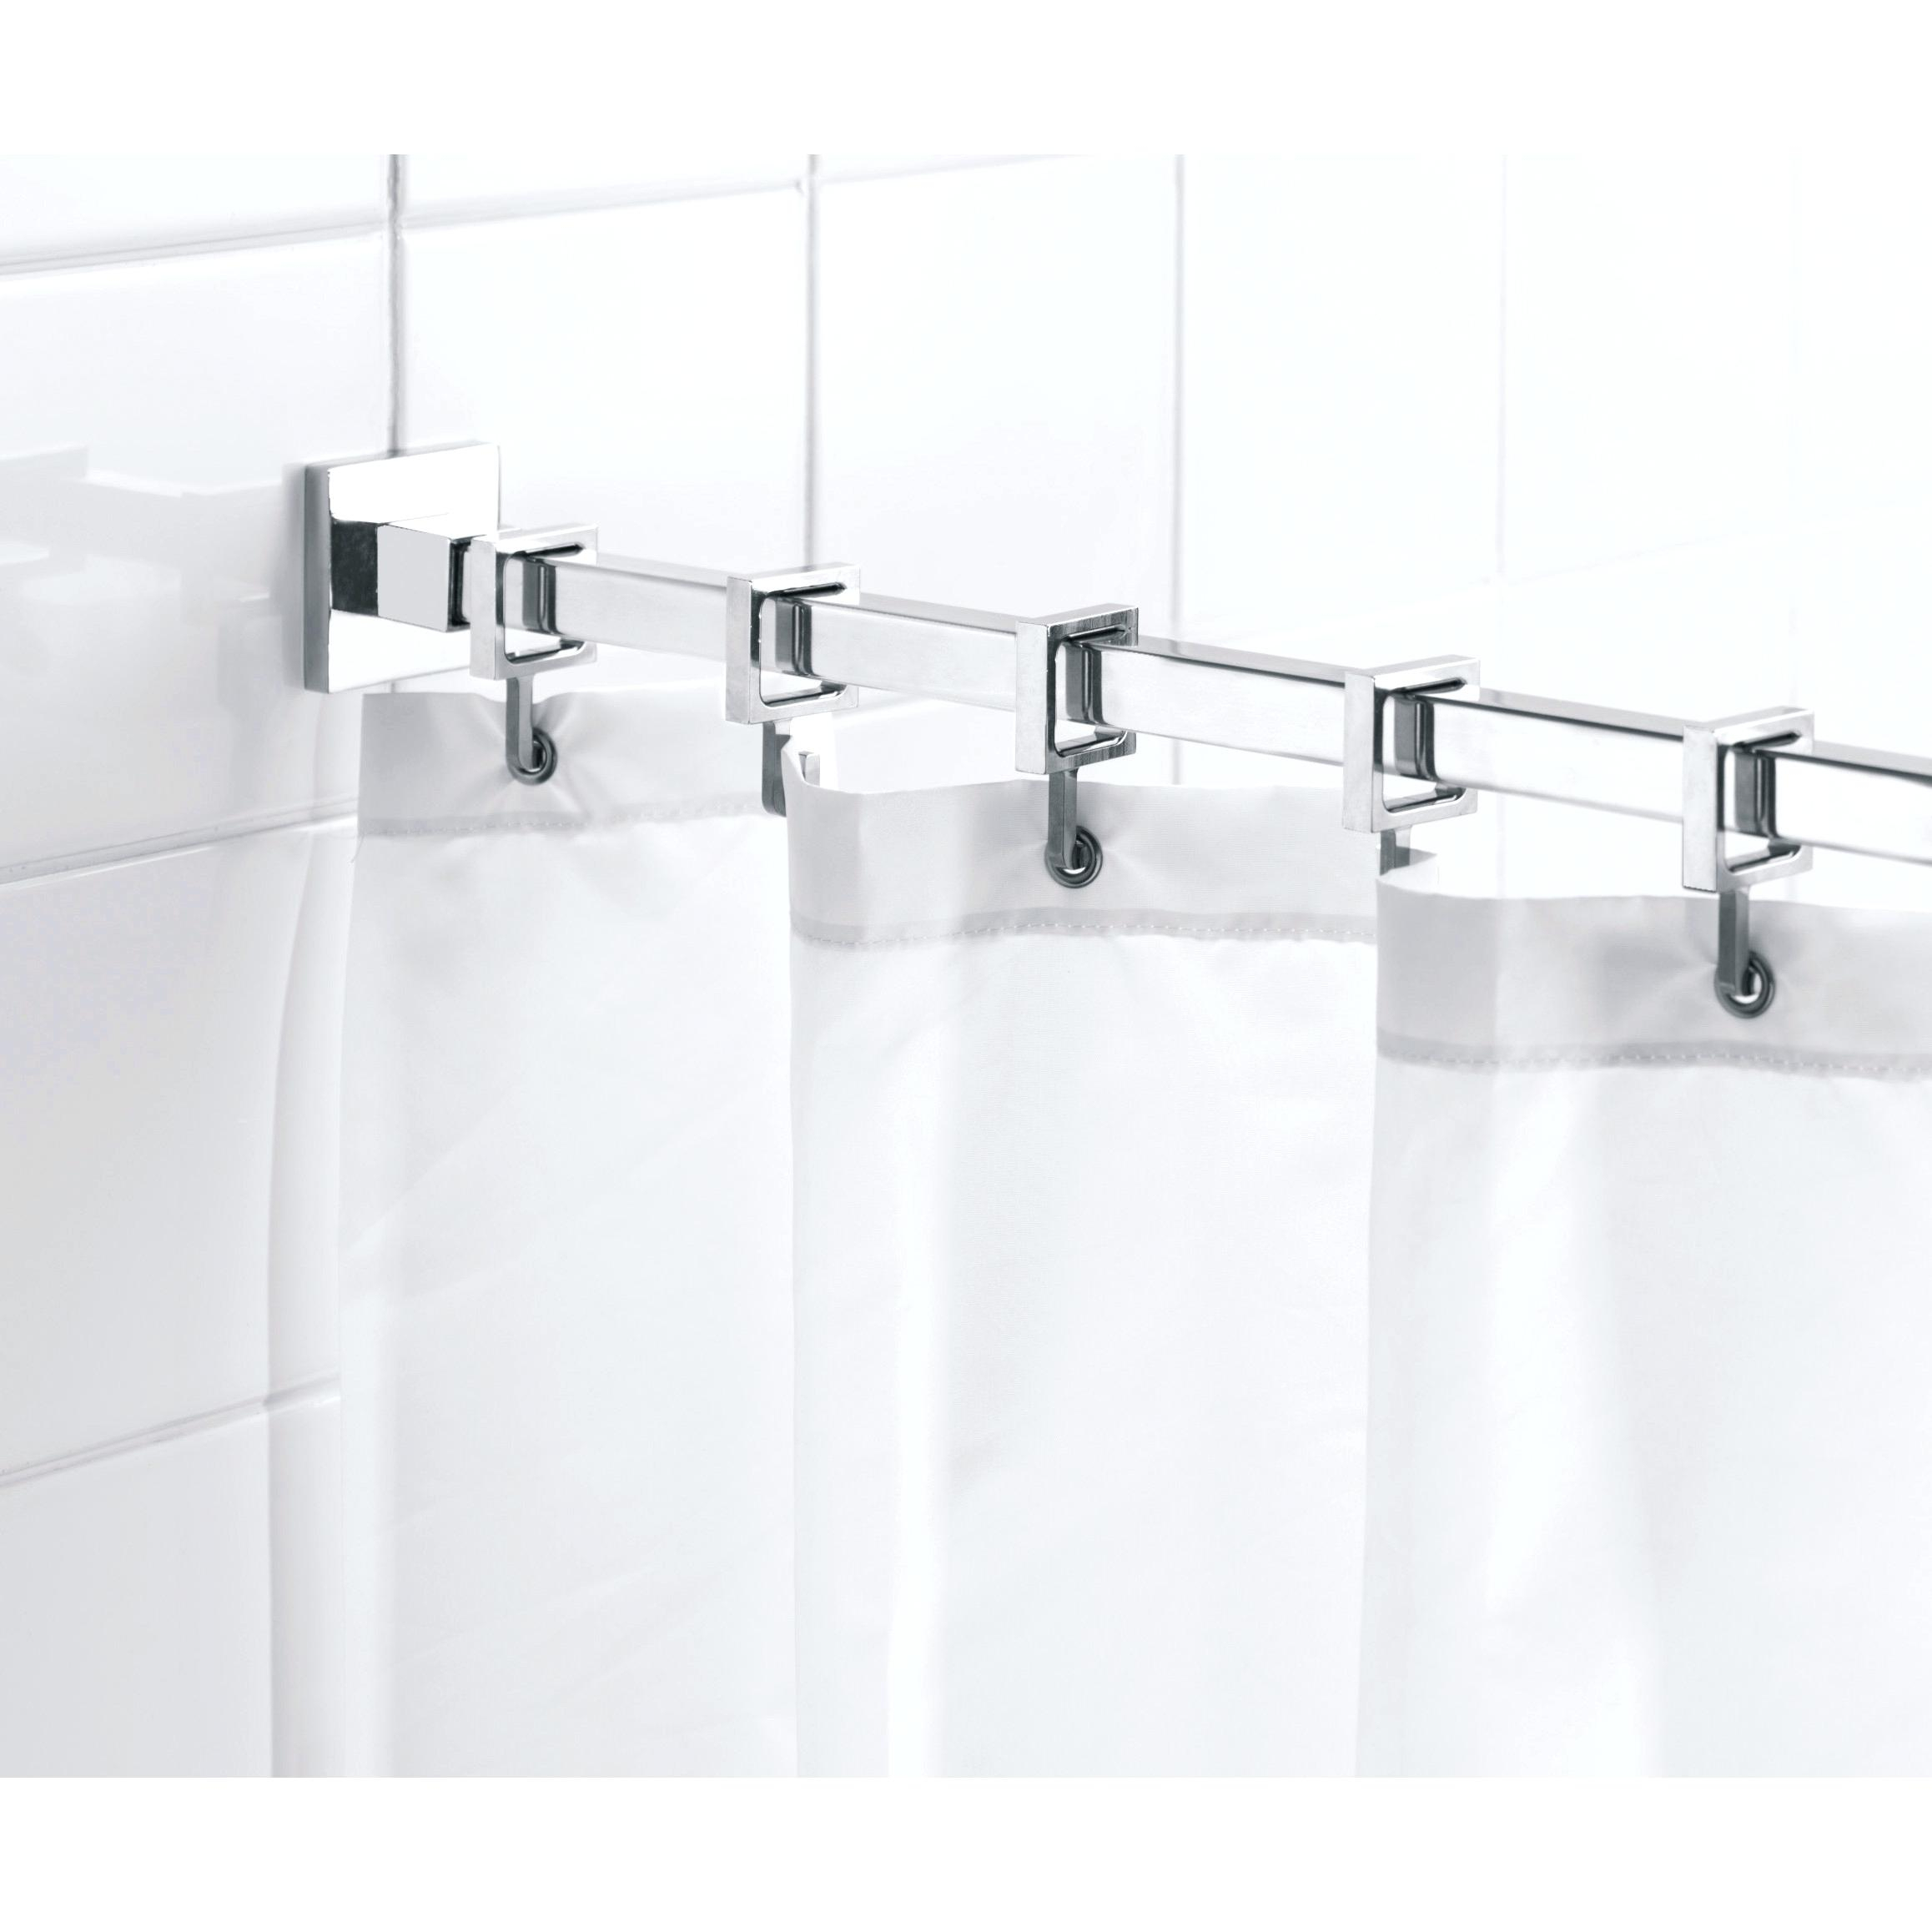 Rv Extended Shower Curtain Rod Shower Curtains Design with regard to sizing 2316 X 2316